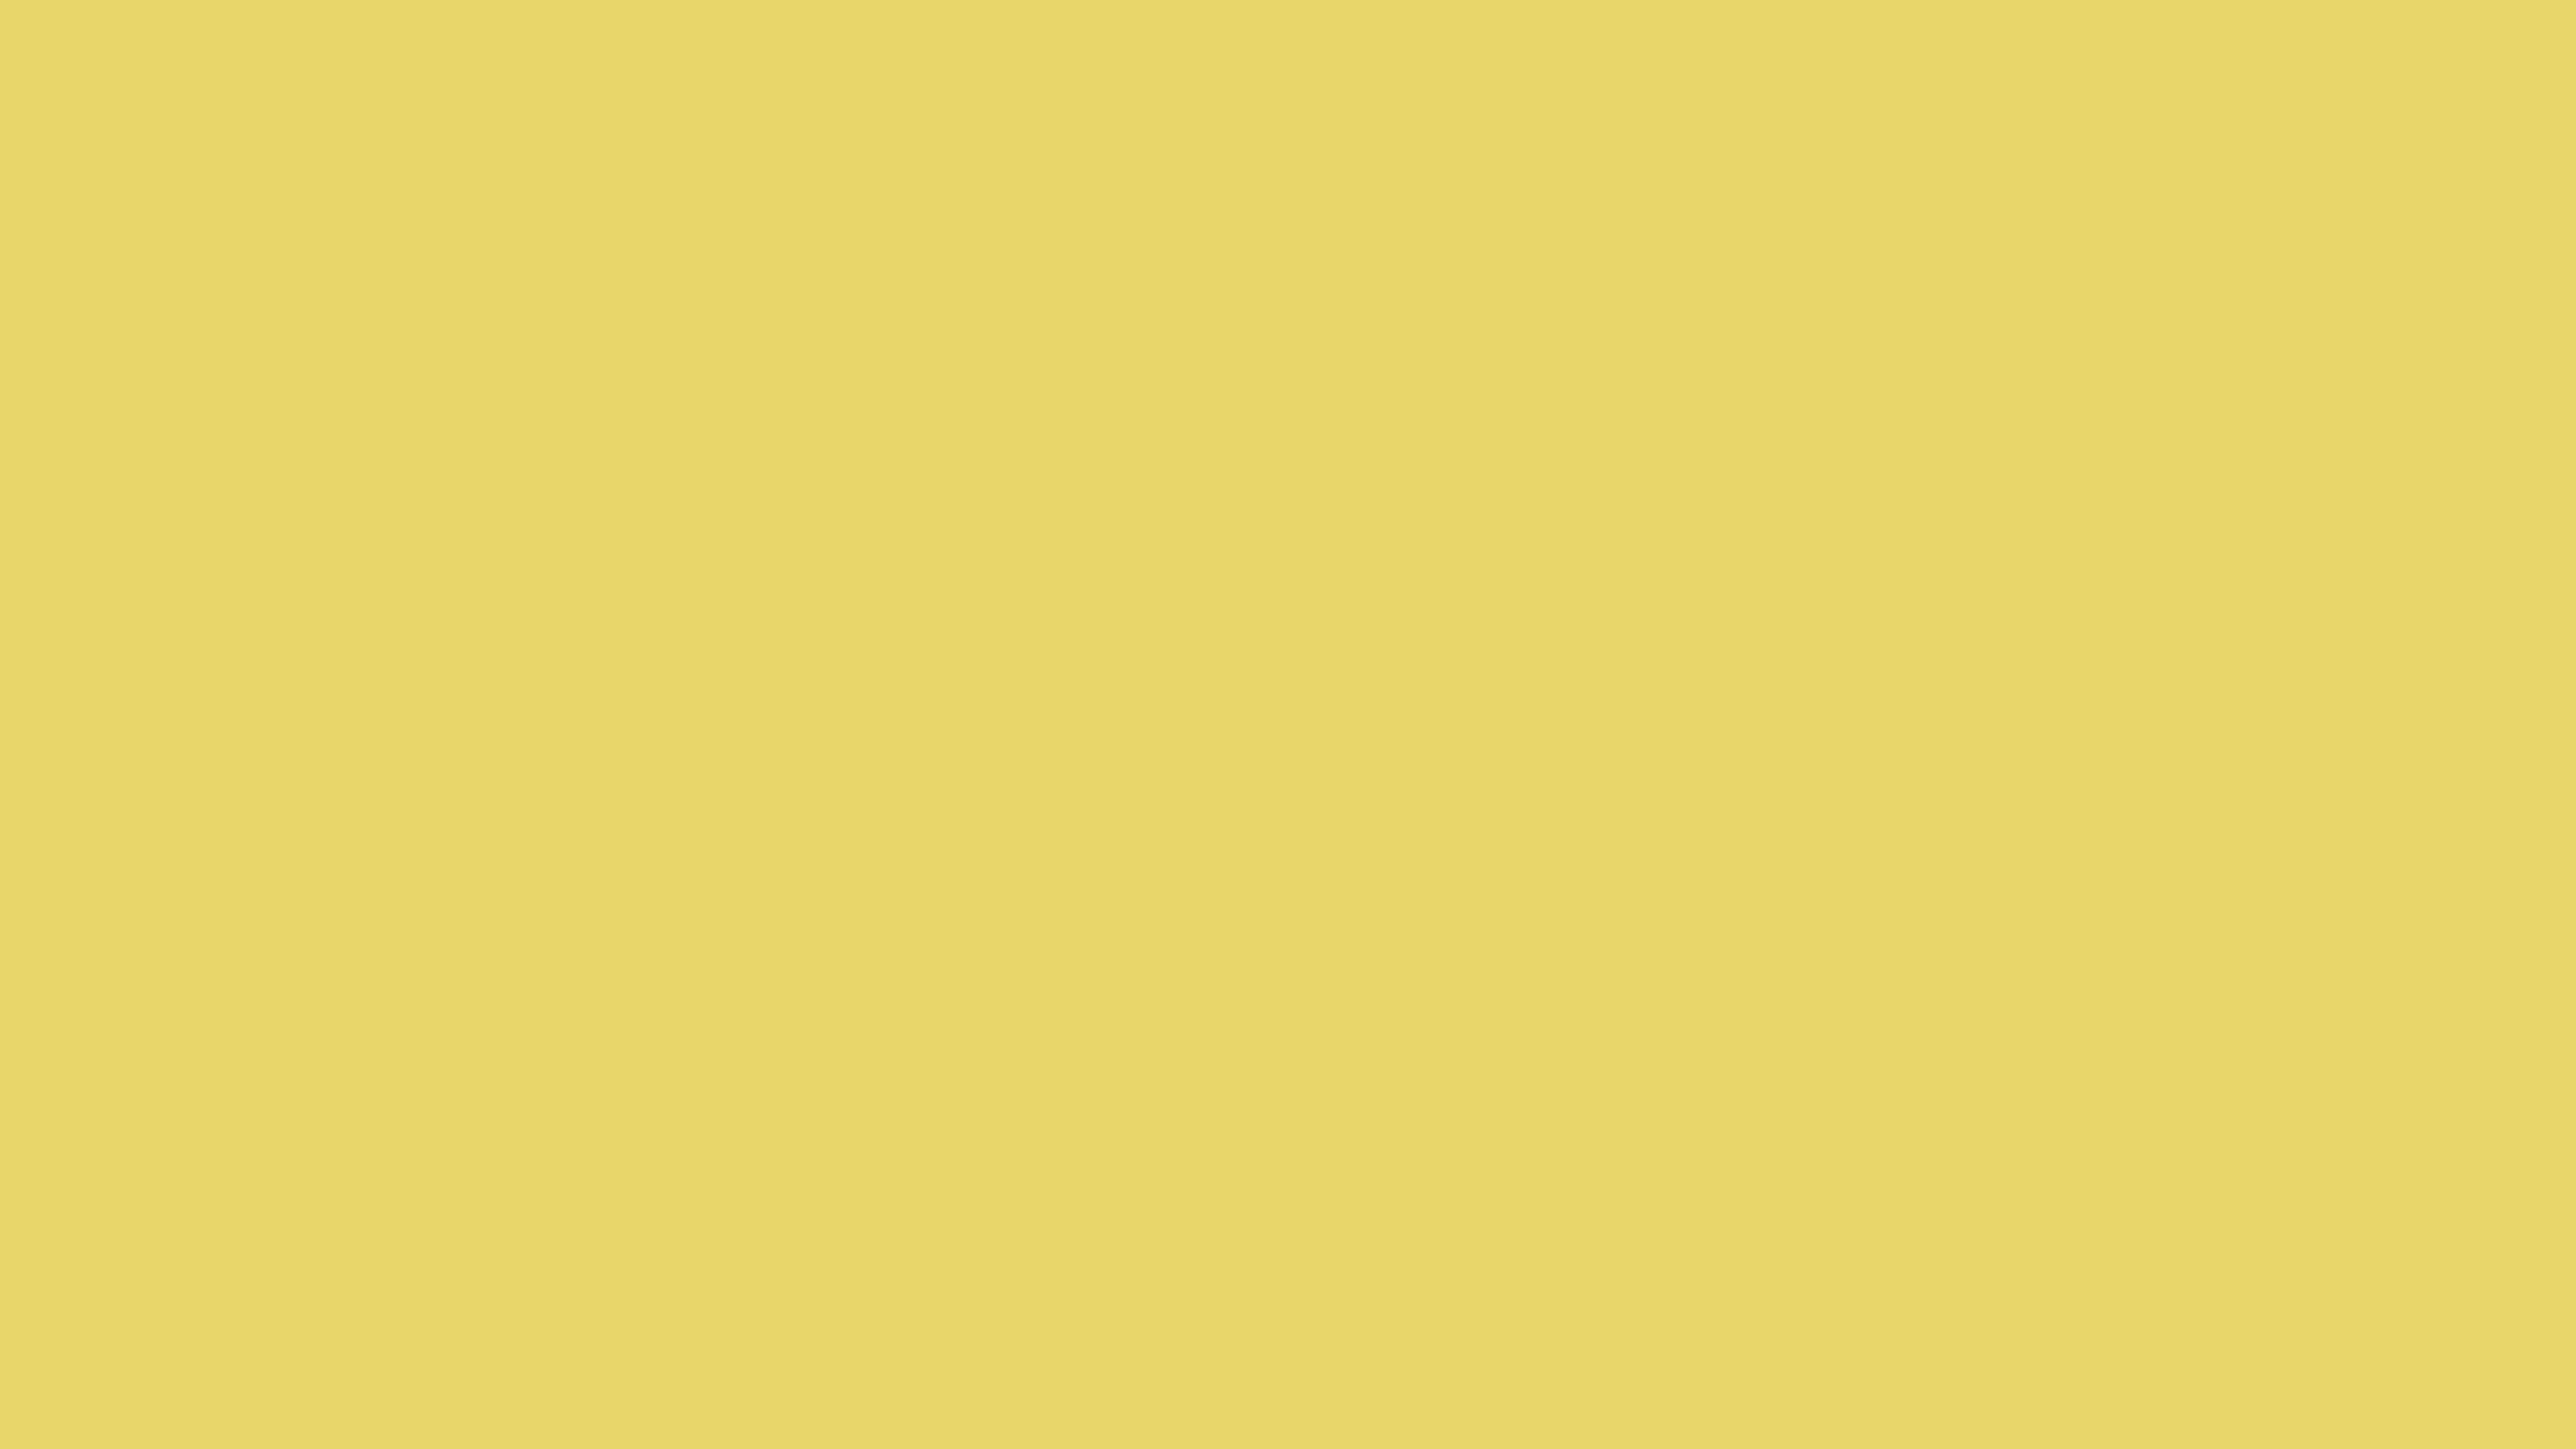 3840x2160 Hansa Yellow Solid Color Background